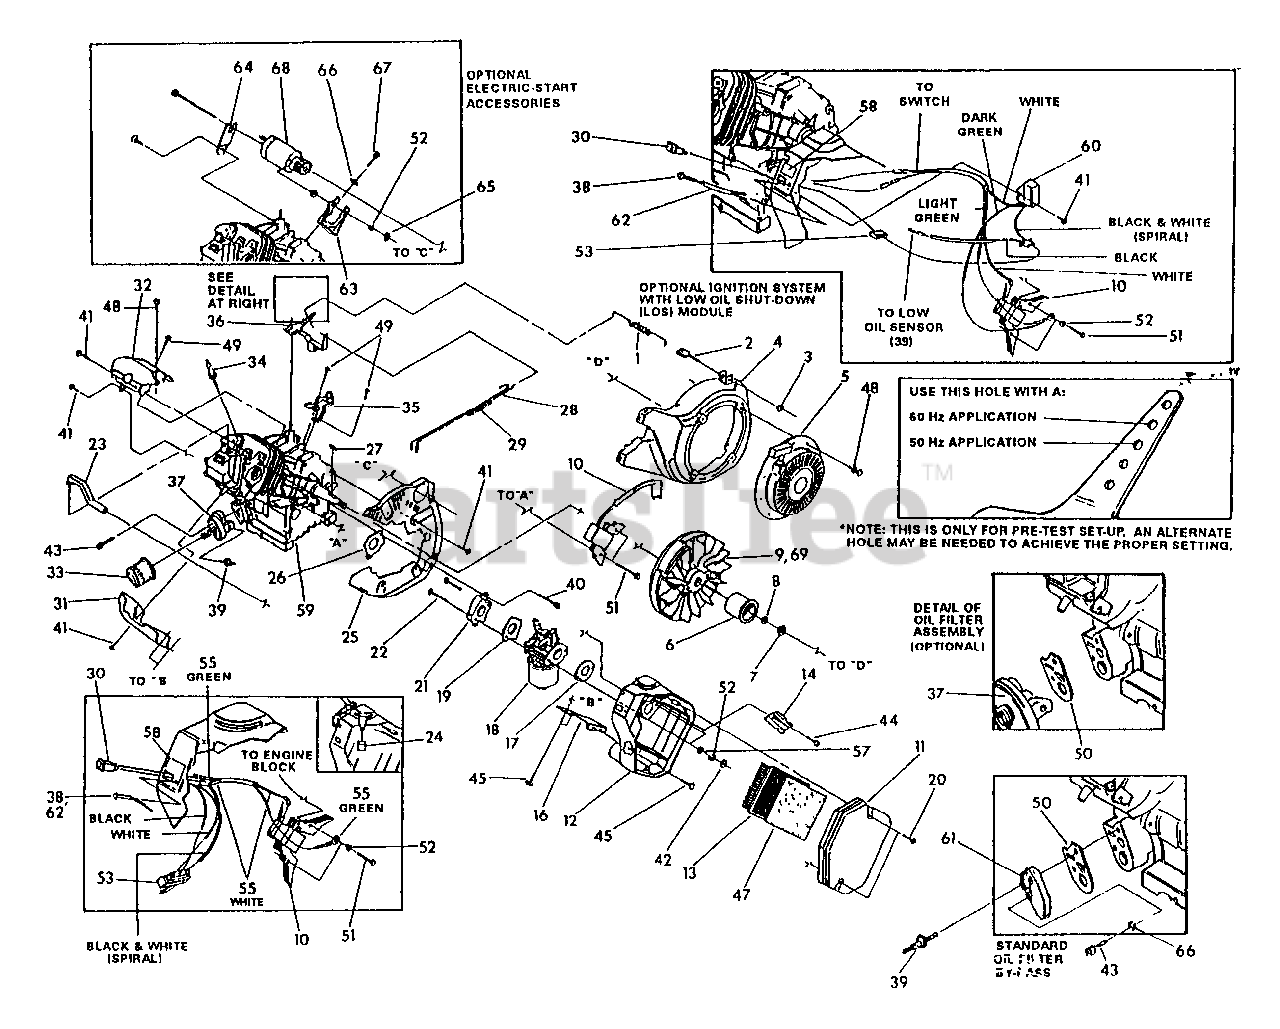 Generac Parts On The Gn Engine Trim Parts Drawing No